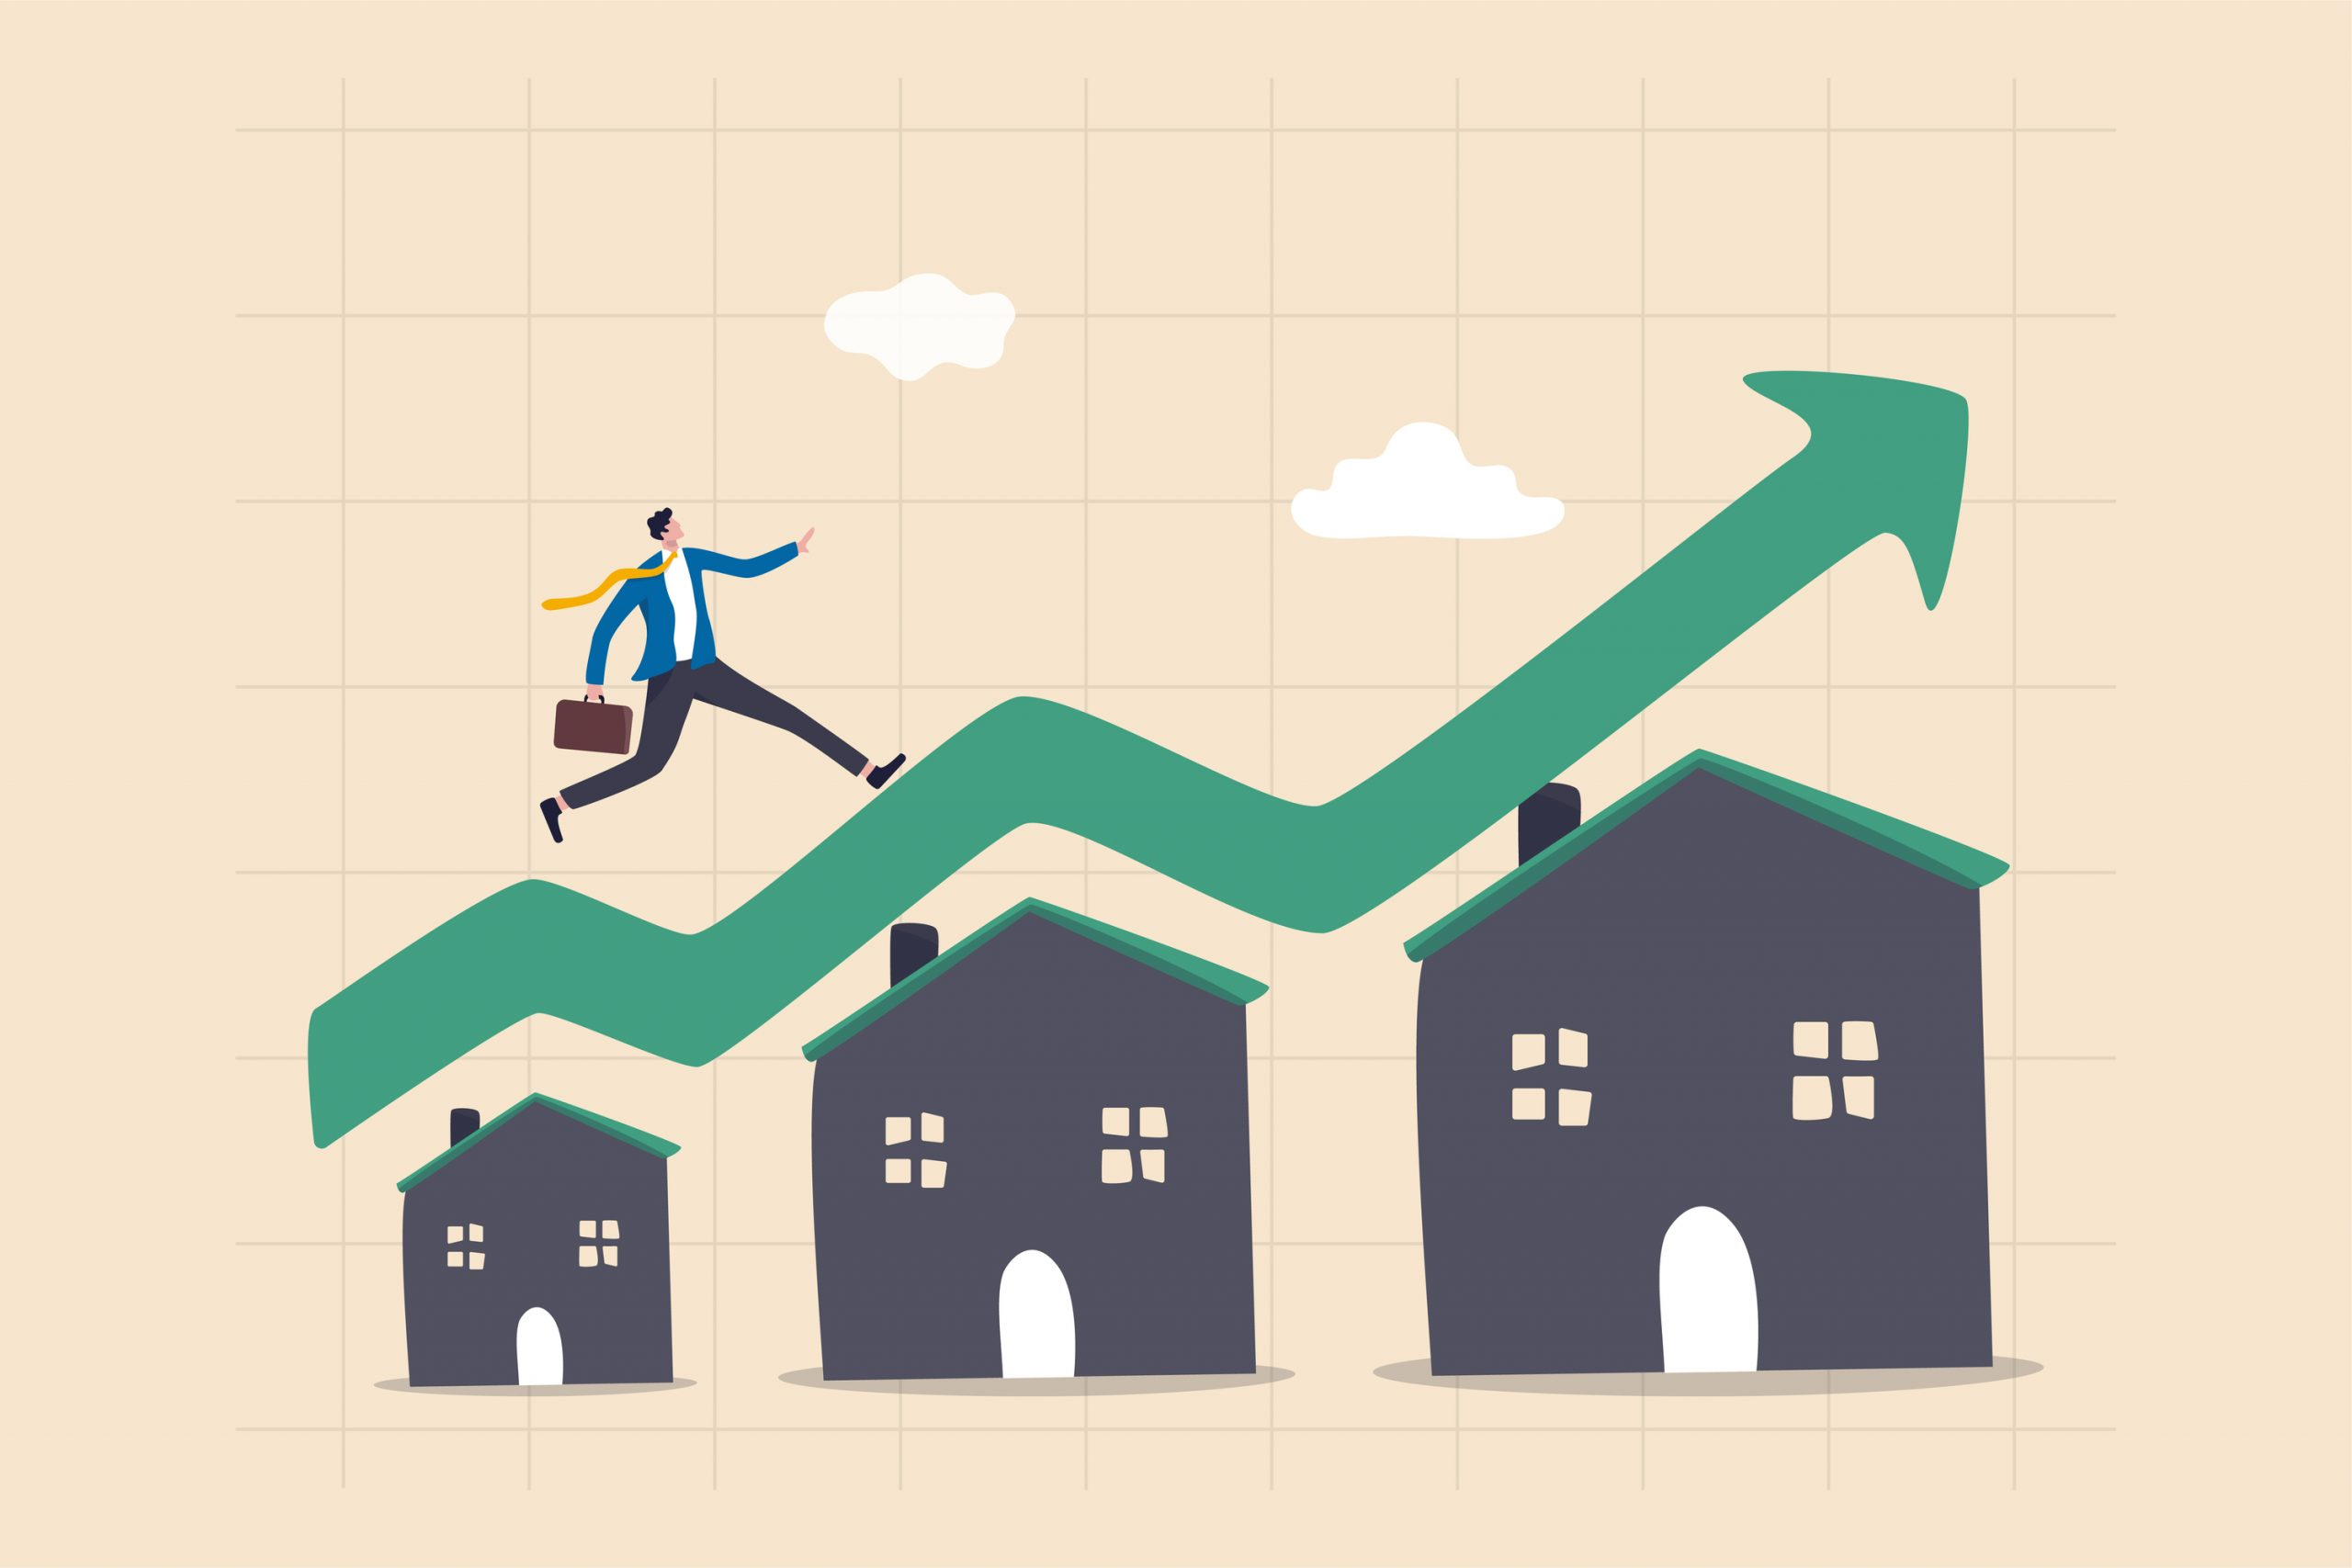 Shift in the make up of the real estate market requires sellers to understand the new dynamic